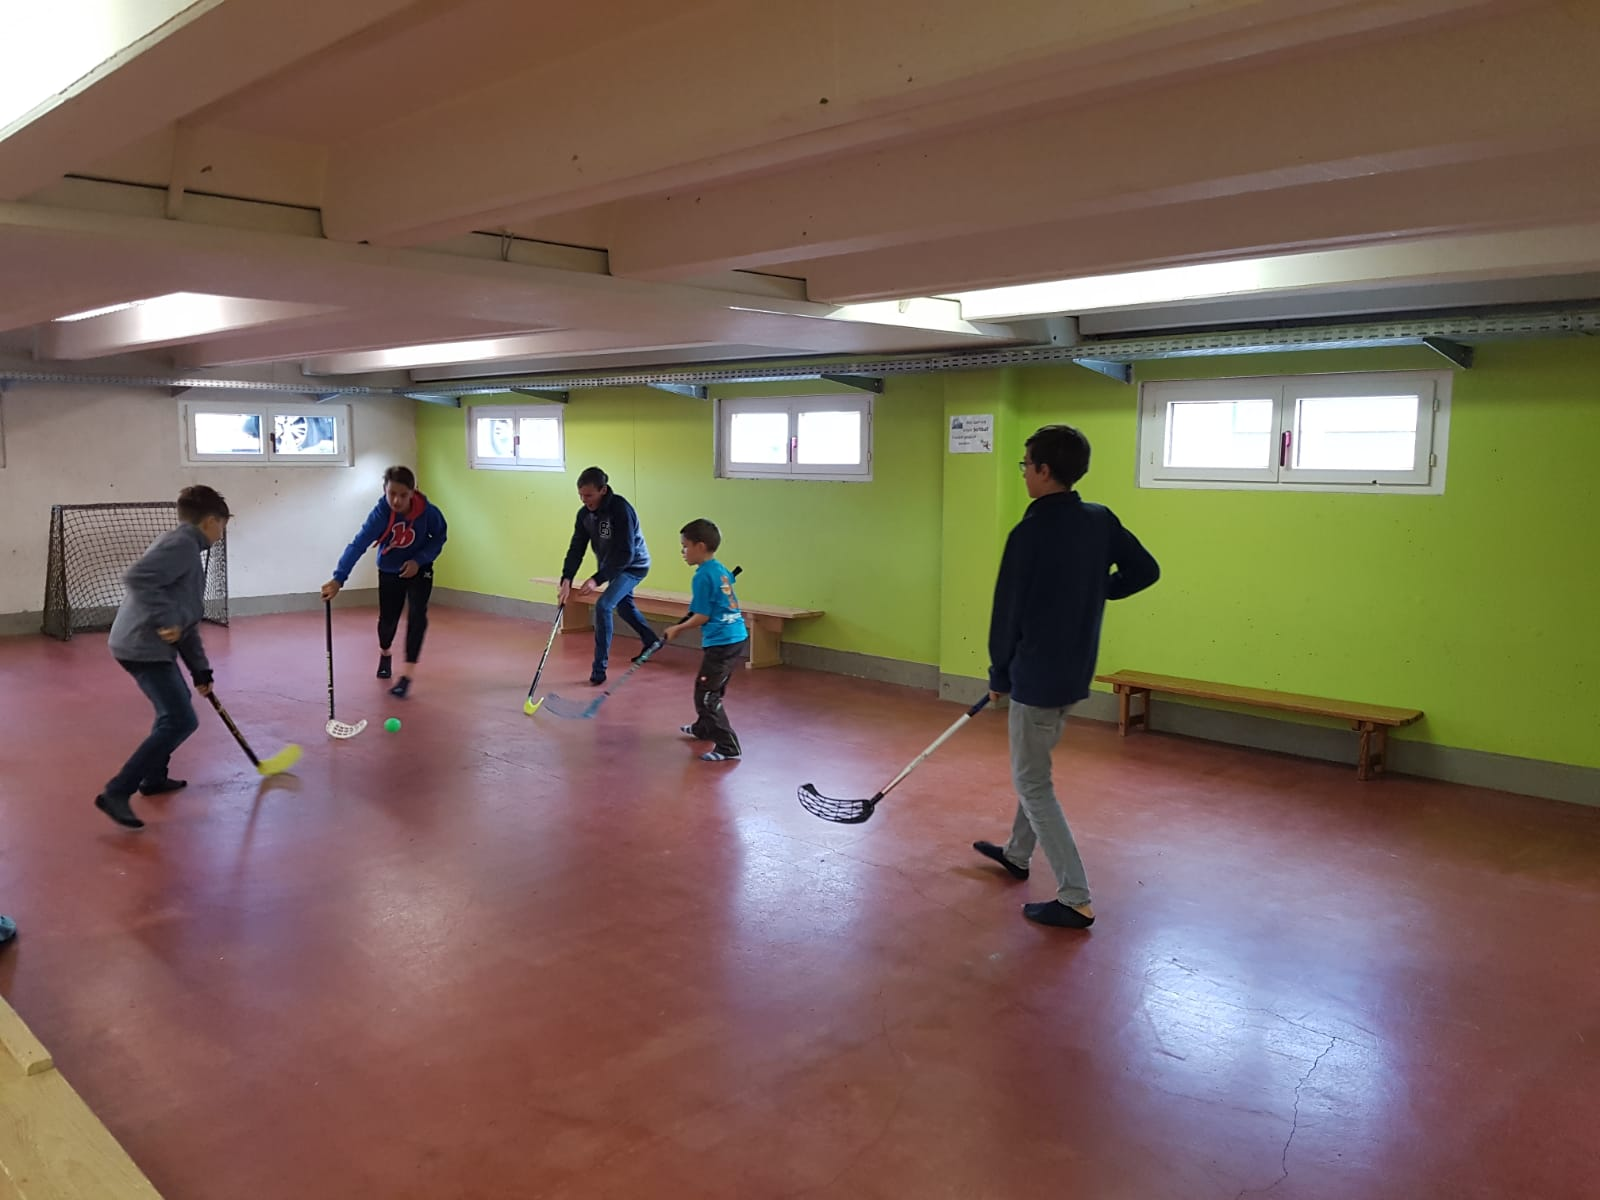 Spontane Unihockey-Turniere am Herbst-Weekend [November 2018]